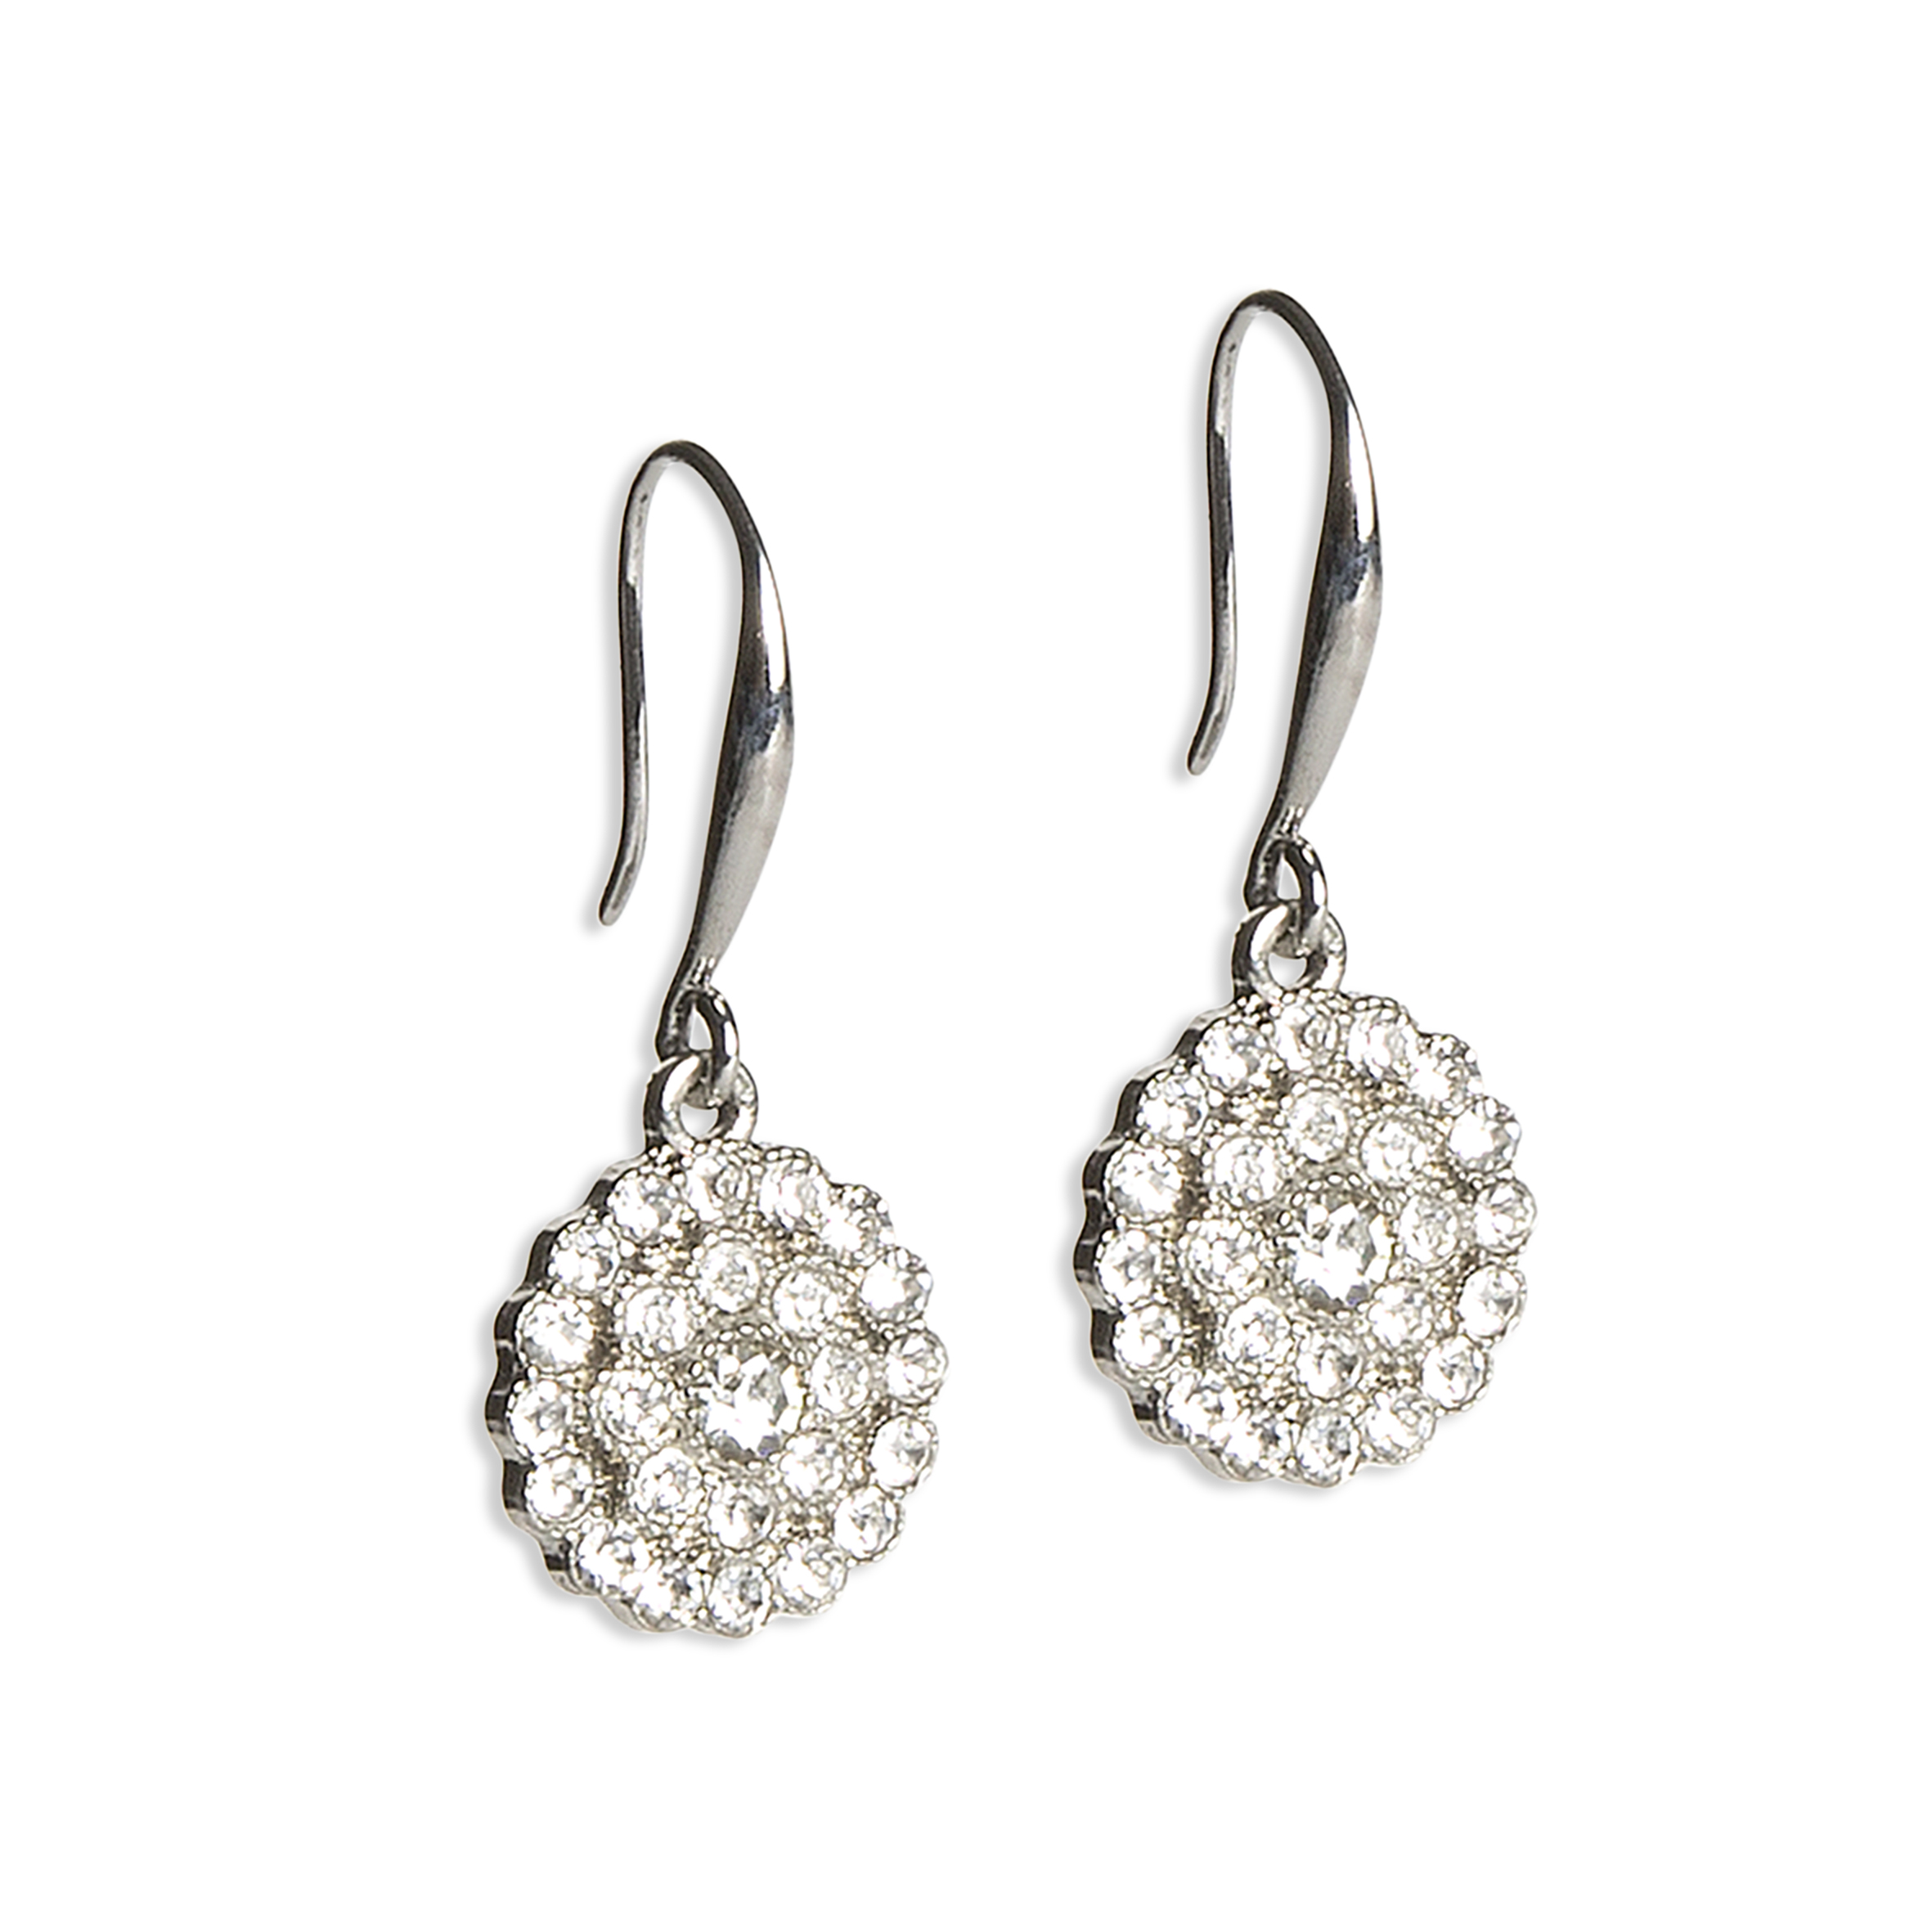 Damsmycke pfg Stockholm Pearls for Girls-Amie Earring 96253-02